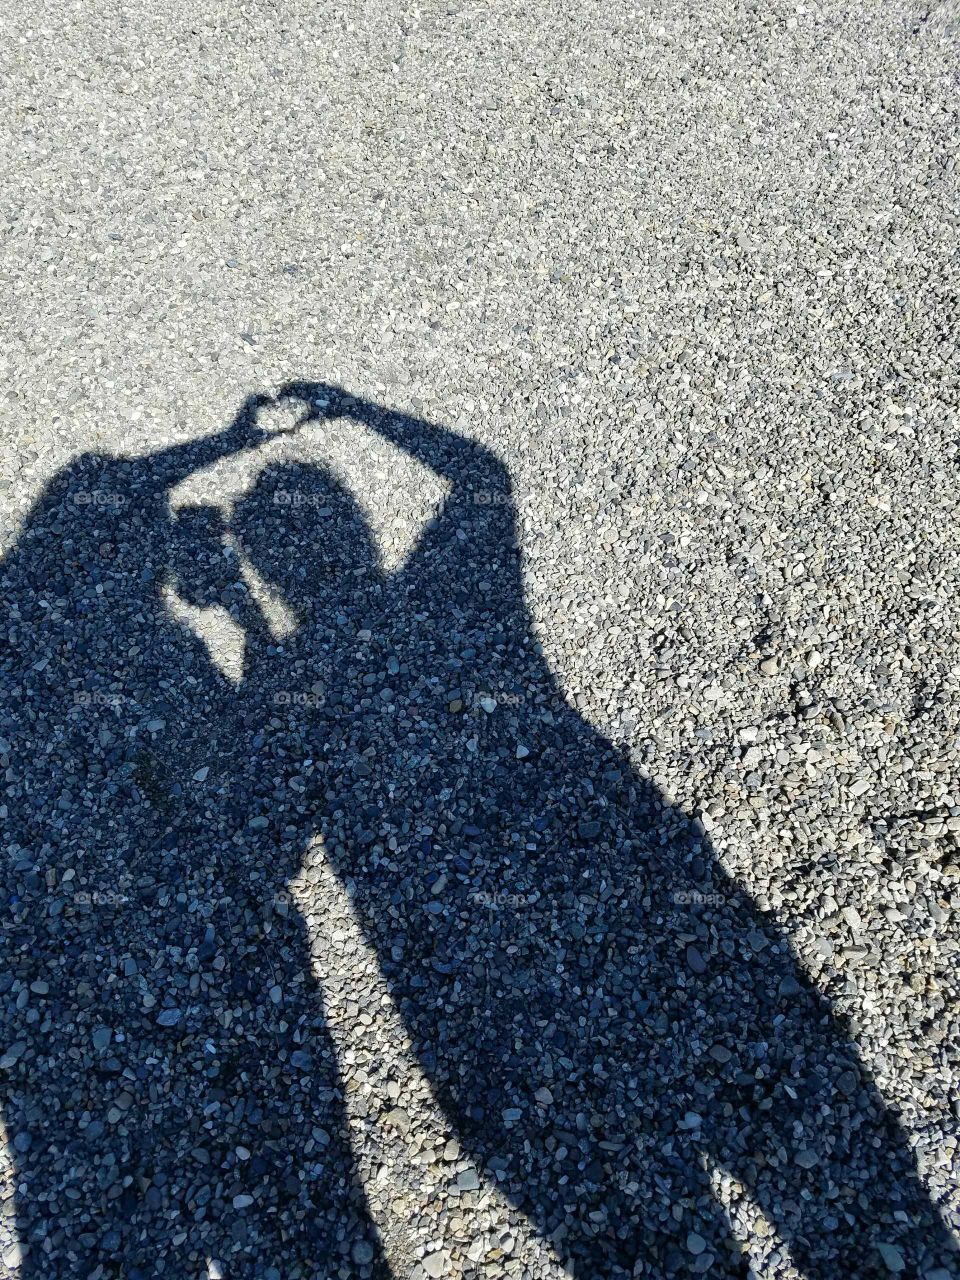 Shadow of two people making heart shape